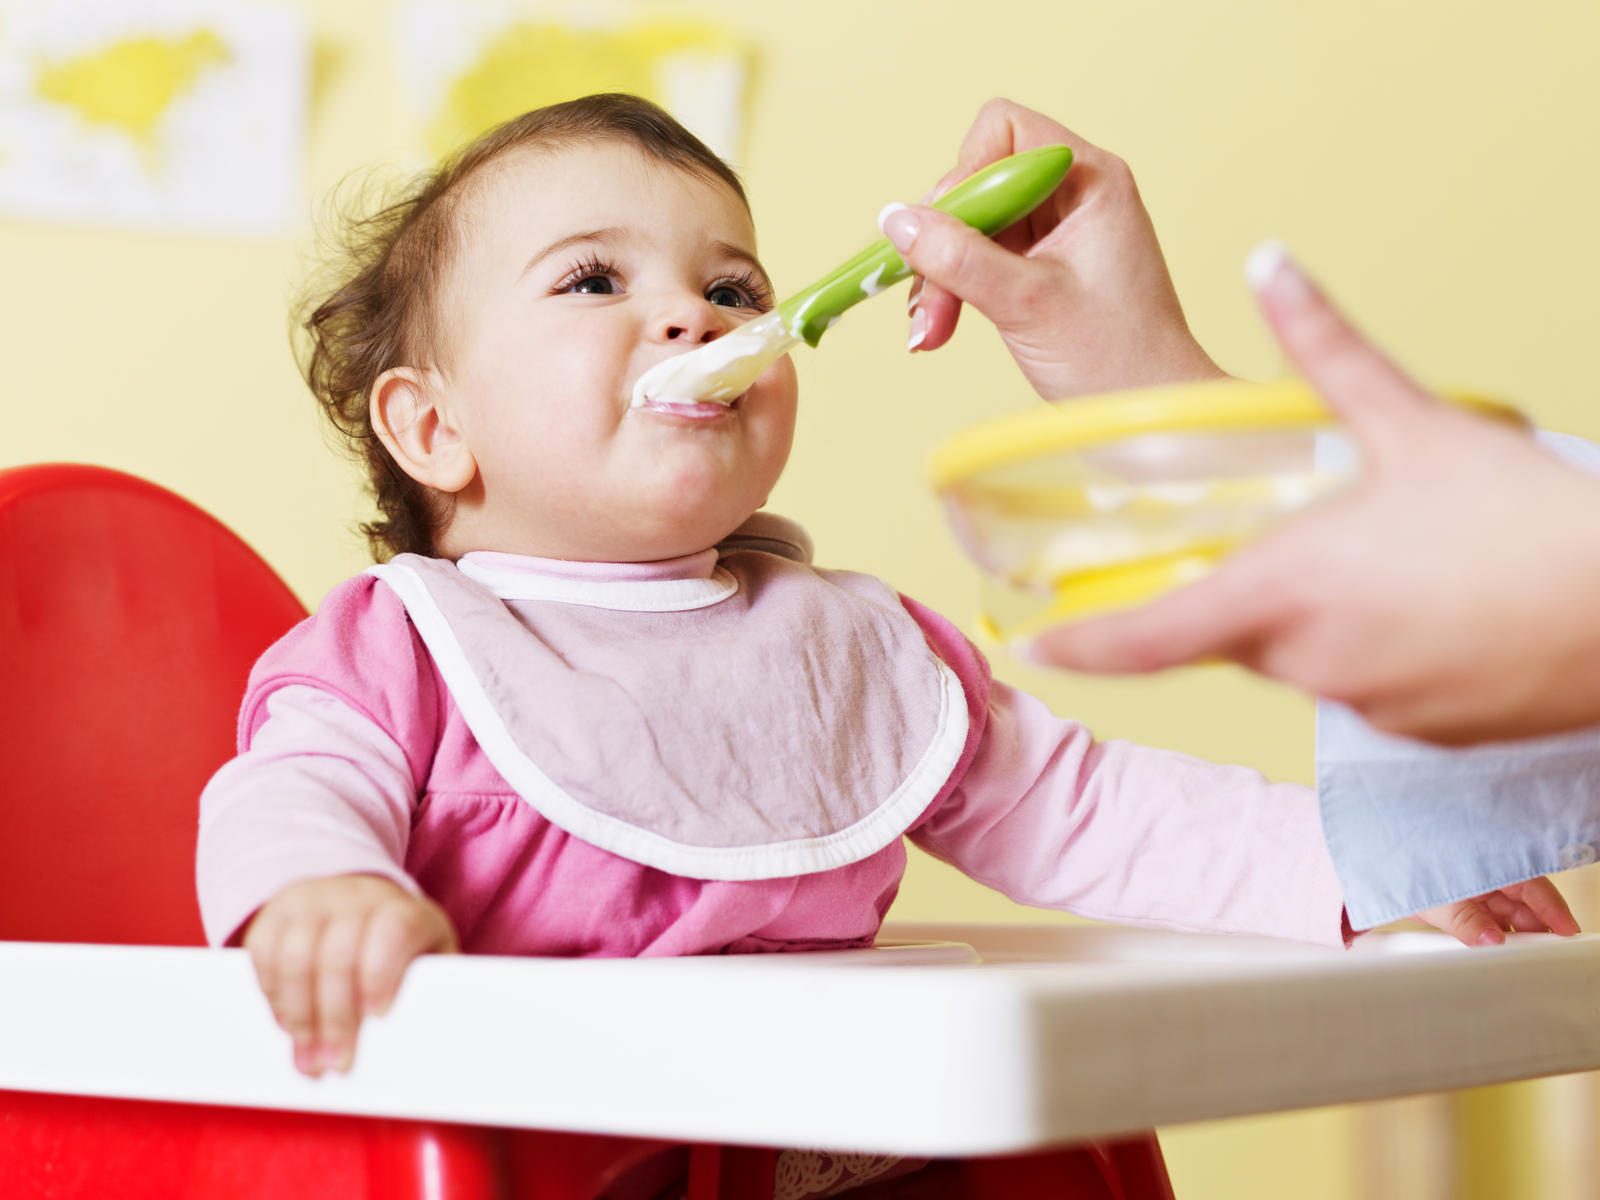 baby eating from spoon